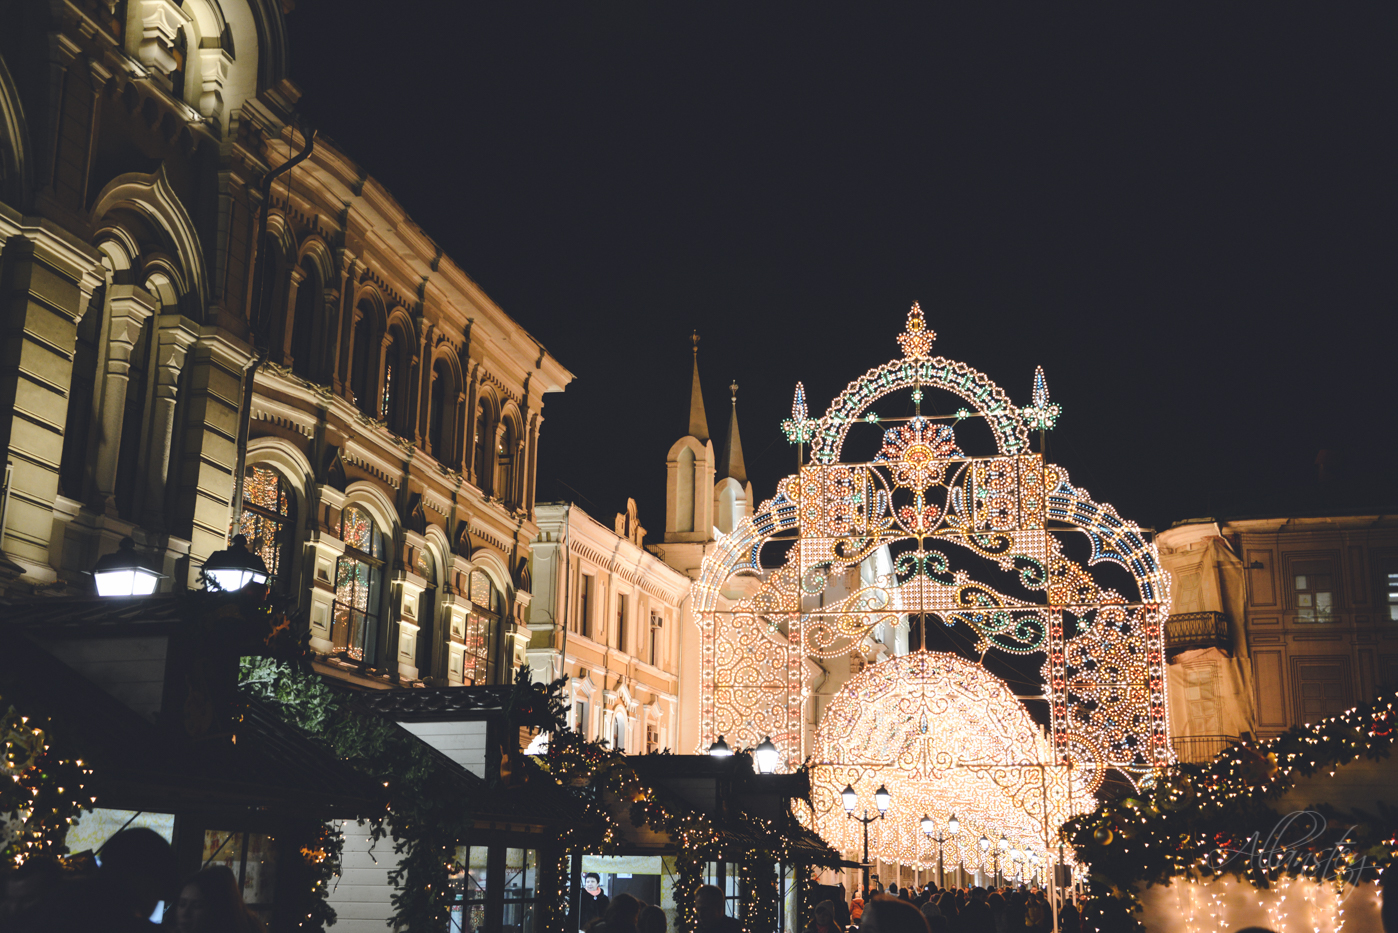 Nikolskaya Street illuminated for Christmas and New Year in Moscow, Russia.